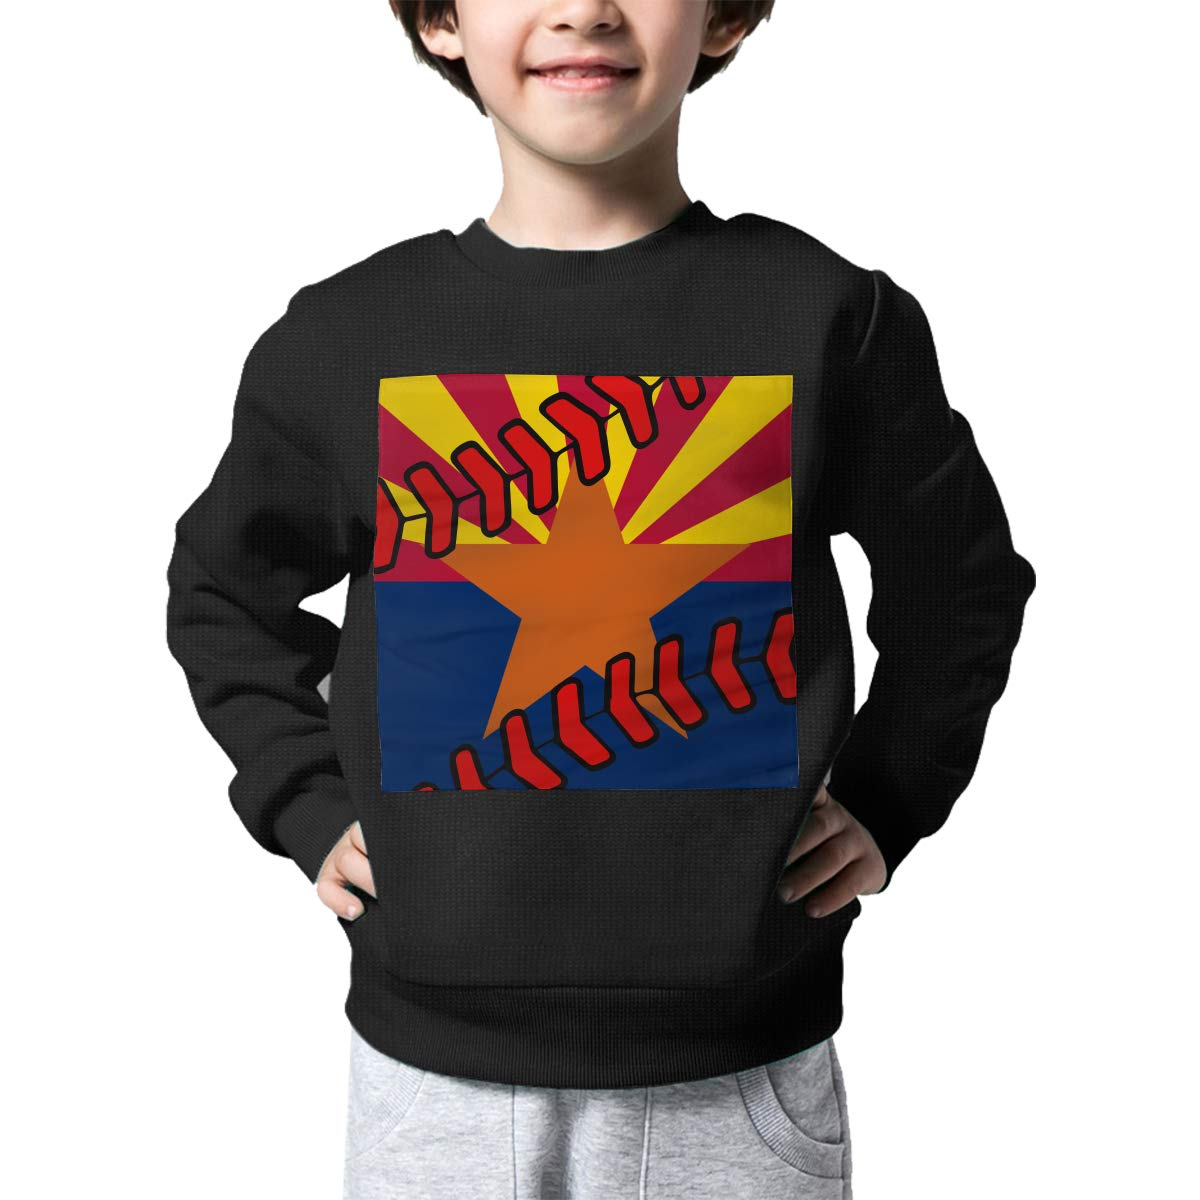 Boys Girls Arizona Flag Baseball Clip Art Lovely Sweaters Soft Warm Childrens Sweater